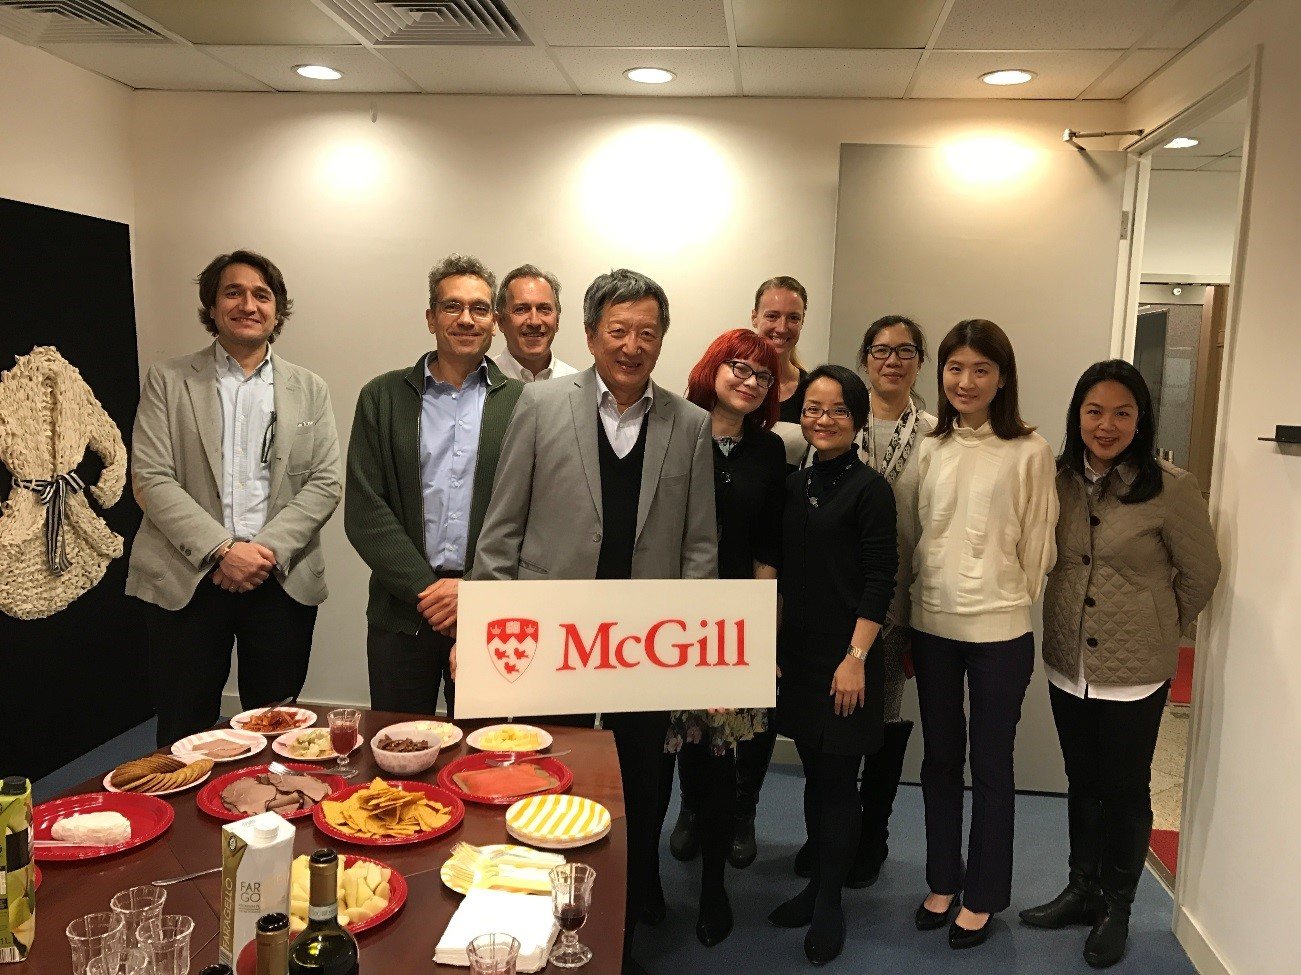 s faculty of education and education university of hong wyng foundation s dr anthony ng and professors dr robert savage and dr tara flanagan along alumni at a wine and cheese in hong kong